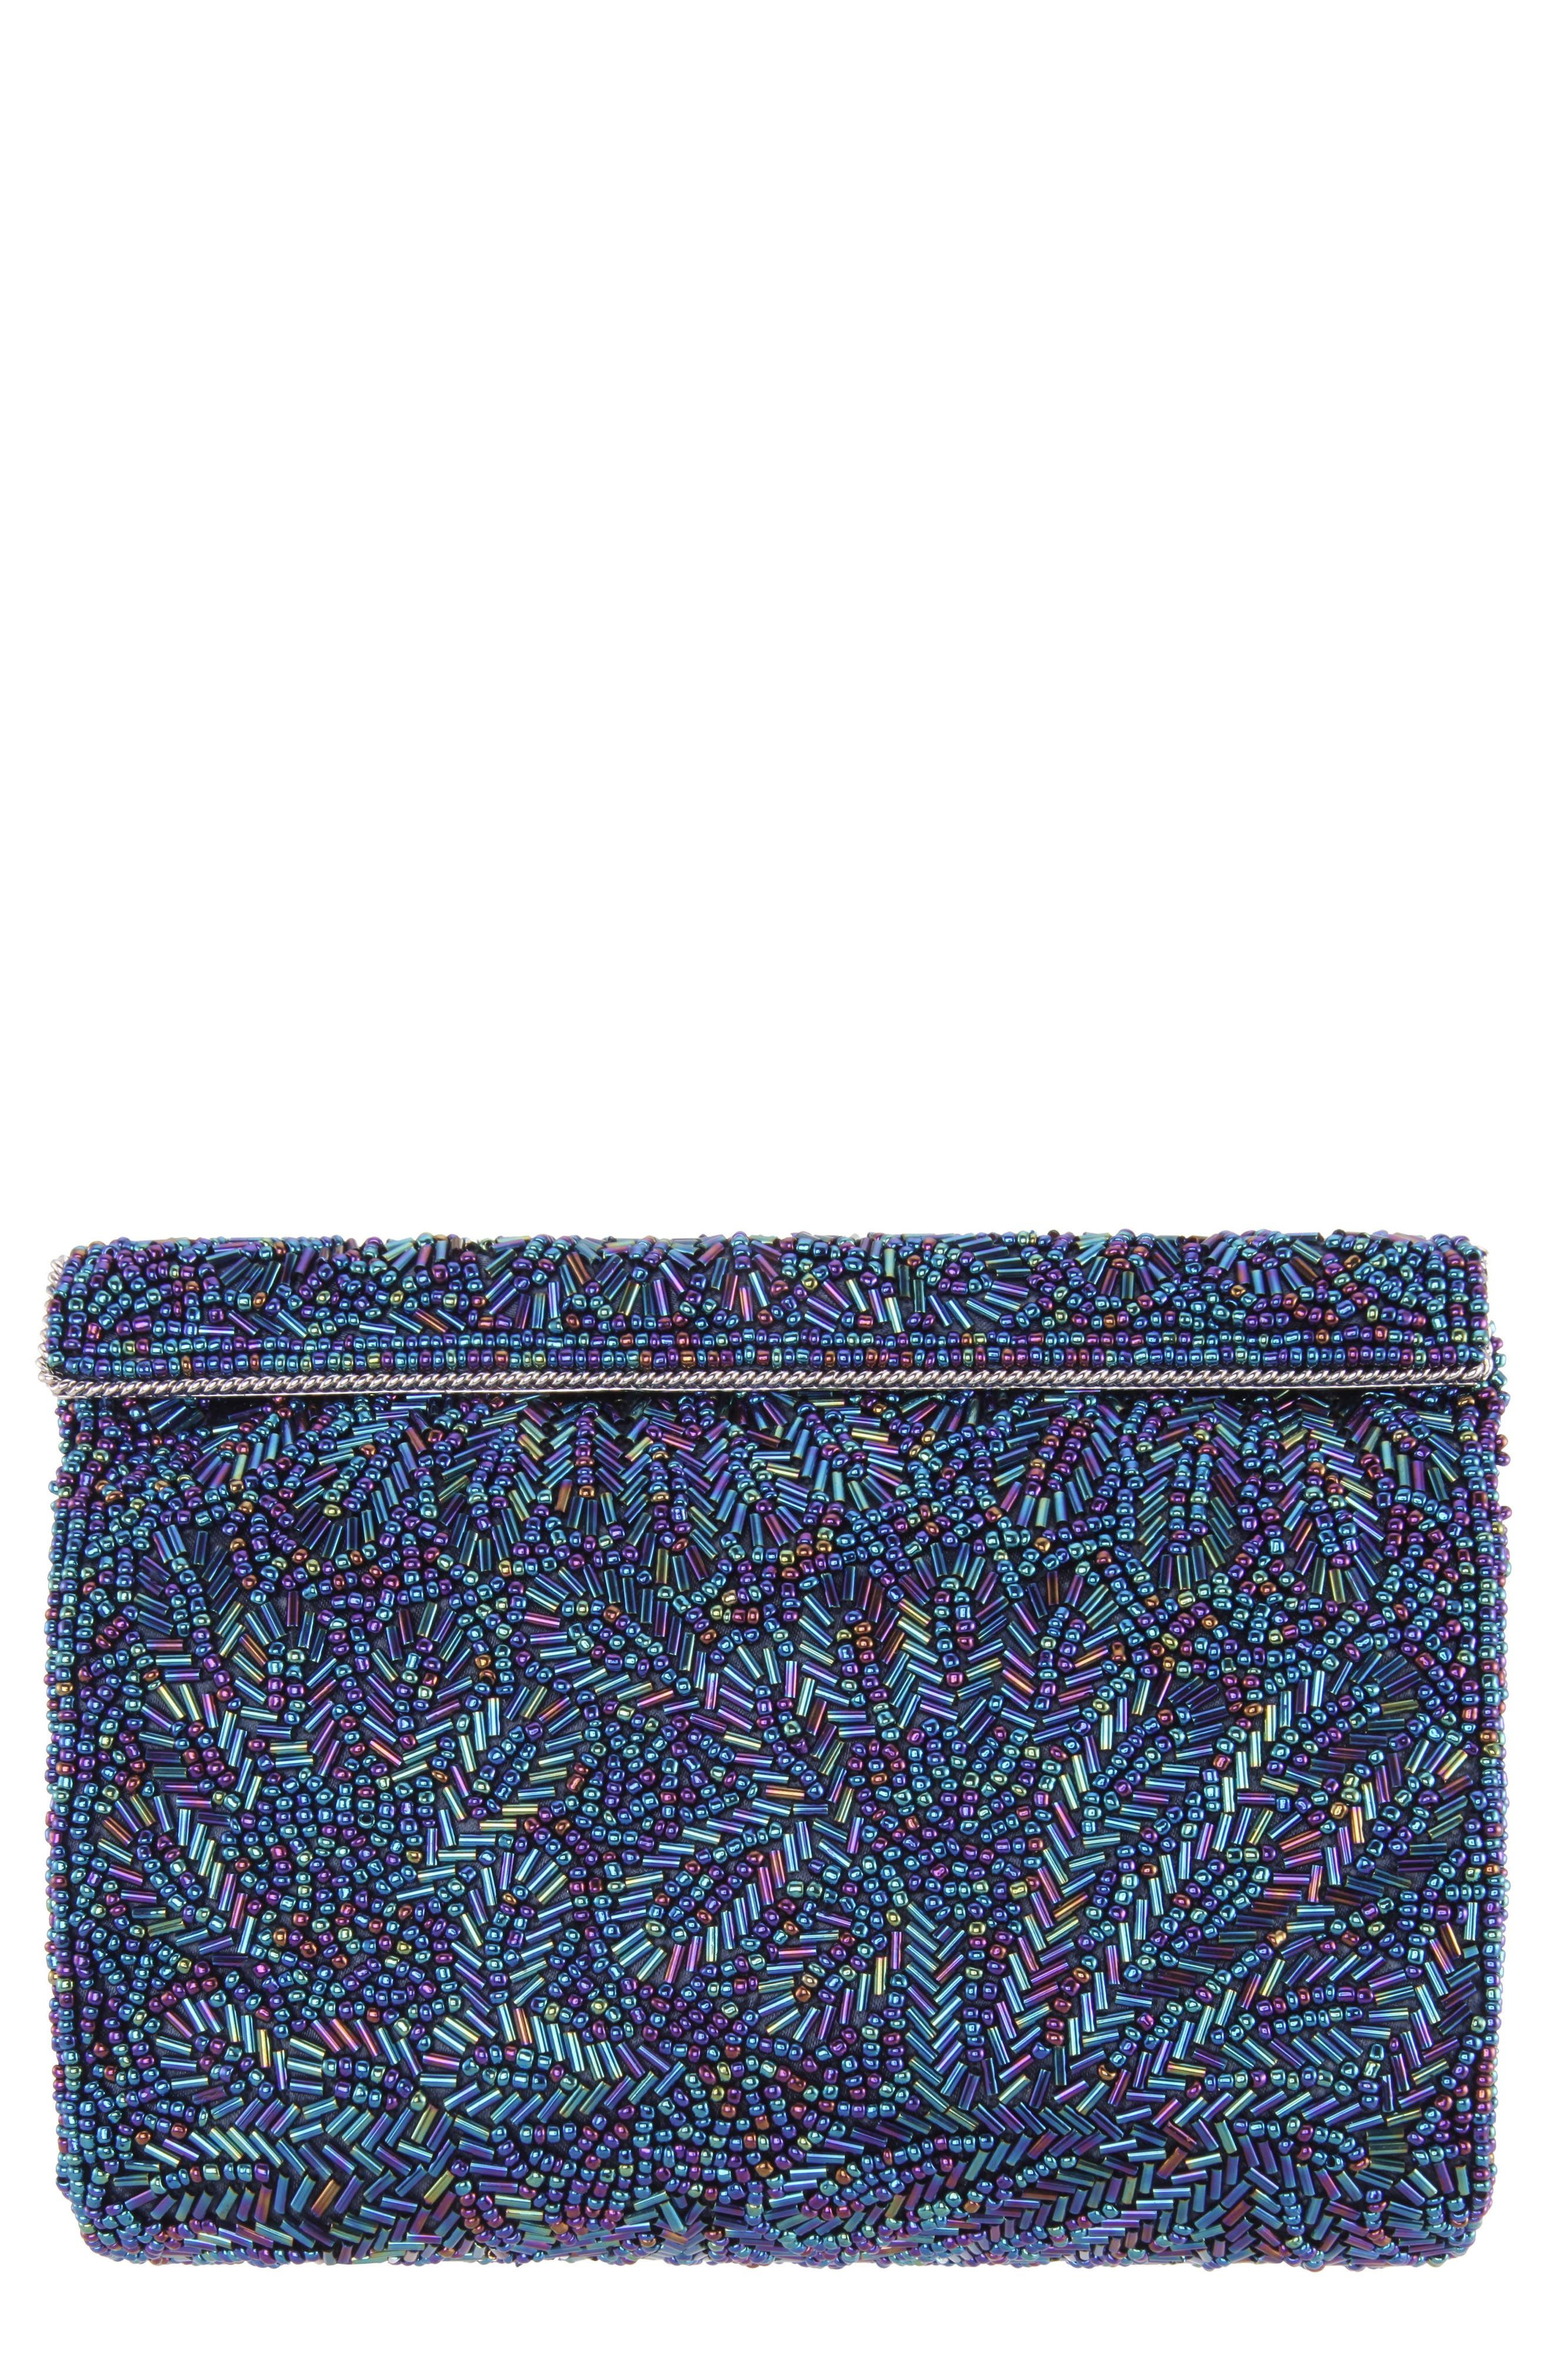 'Meadow' Beaded Frame Clutch,                             Main thumbnail 1, color,                             472